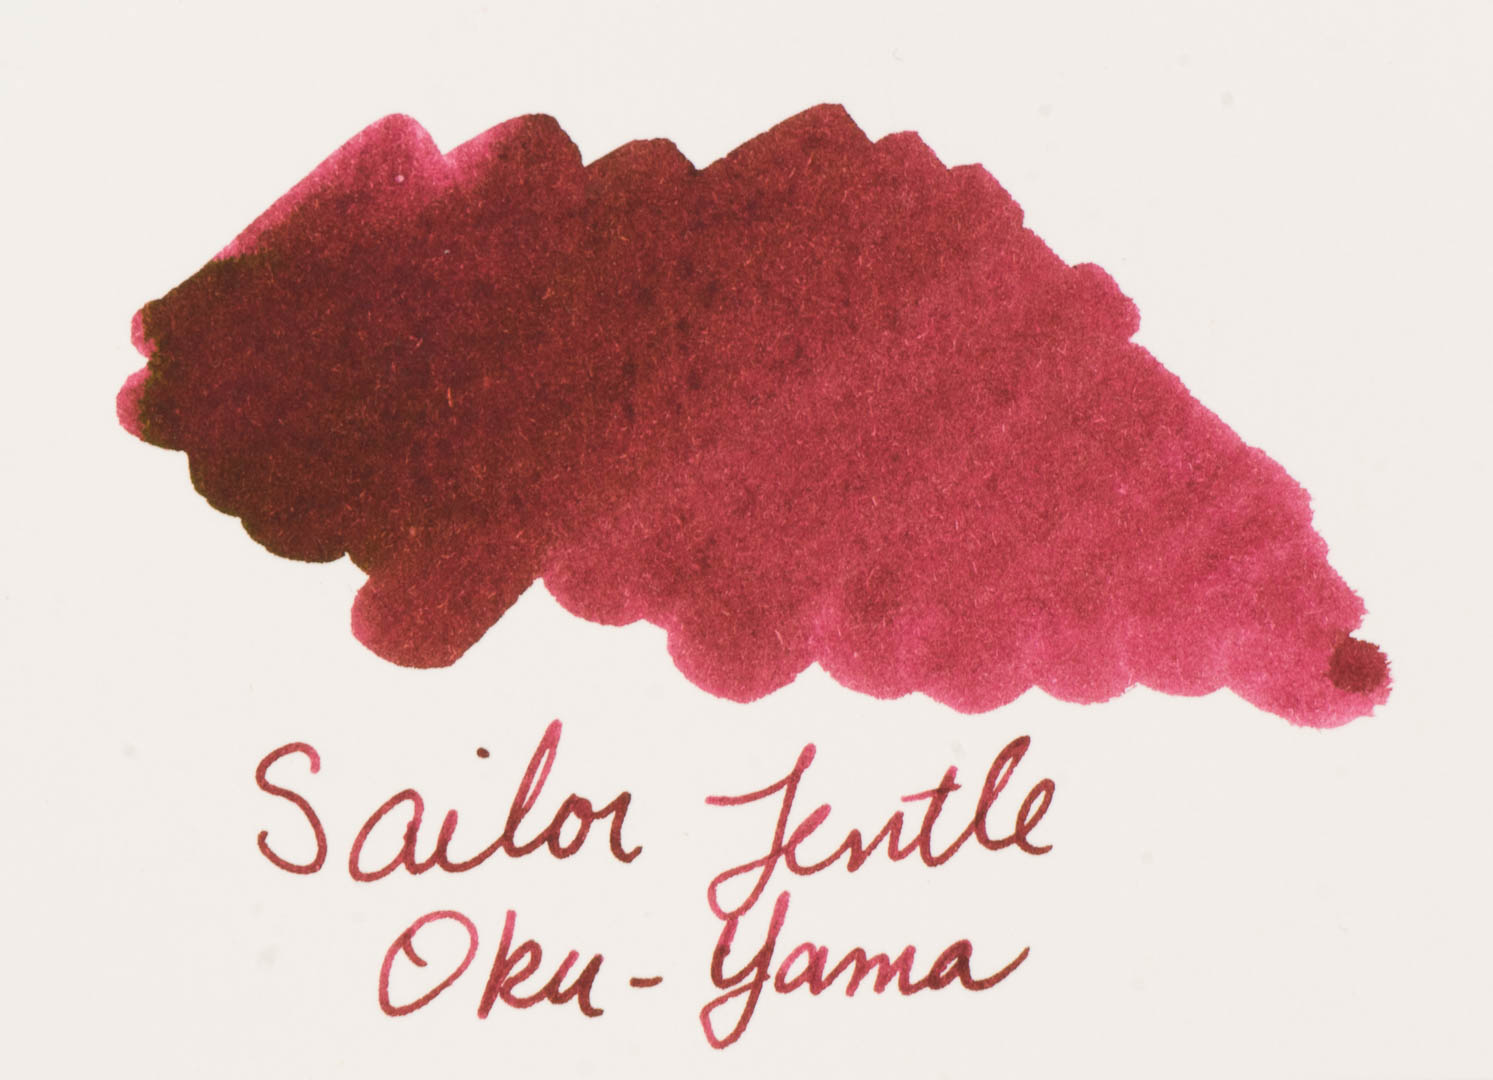 Ink Spot: Sailor Jentle Four Seasons Oku-Yama